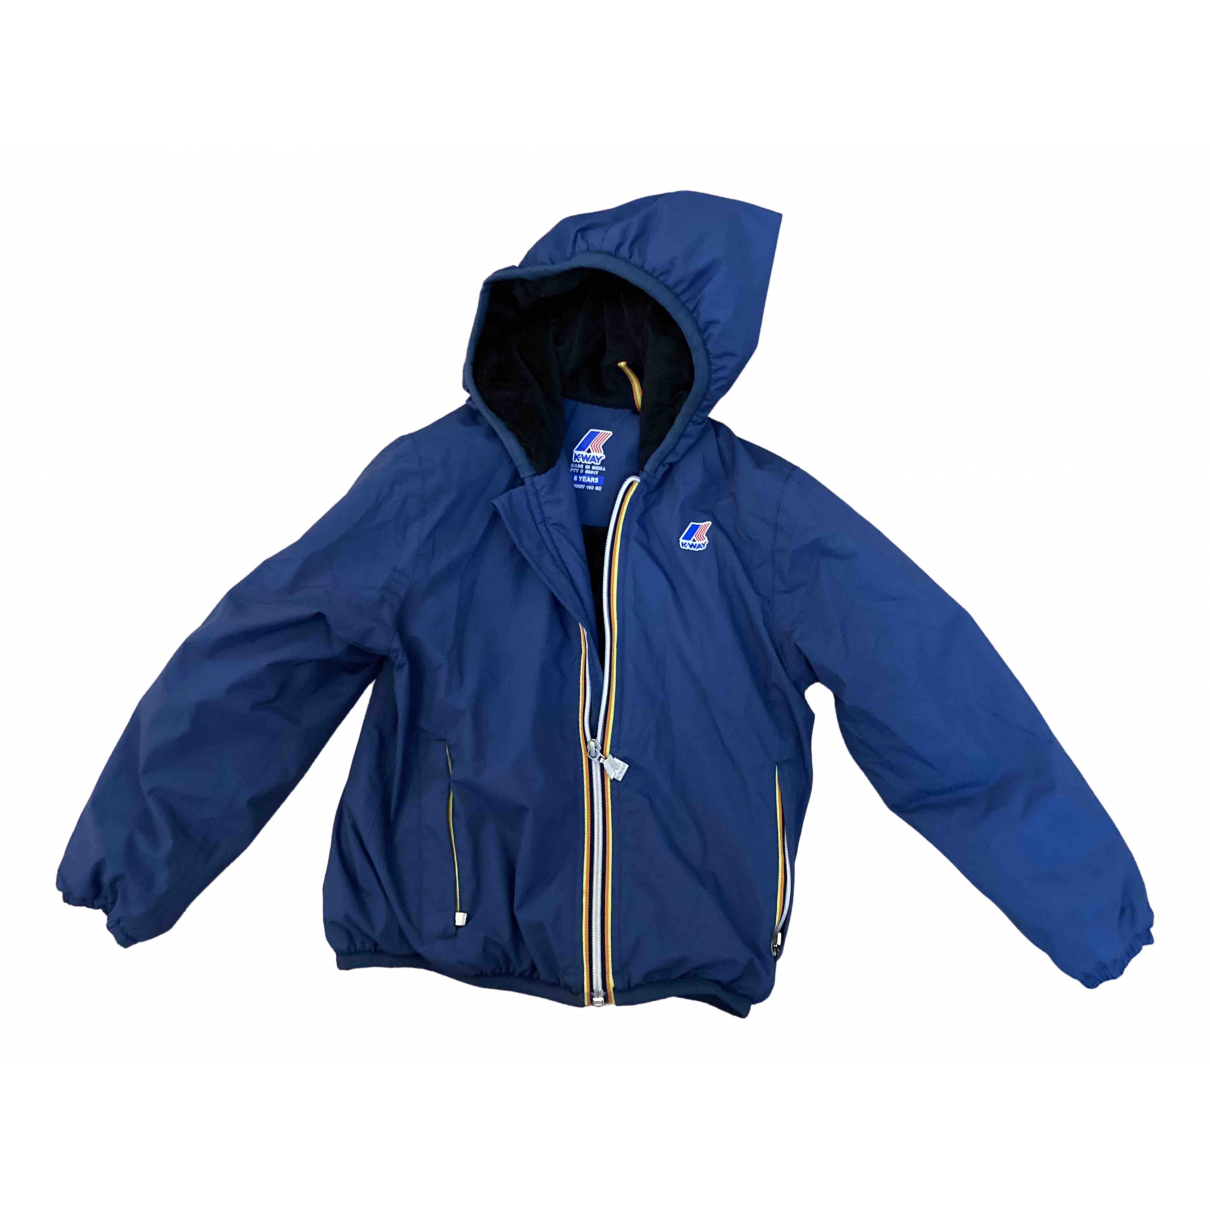 K-way \N jacket & coat for Kids 6 years - up to 114cm FR